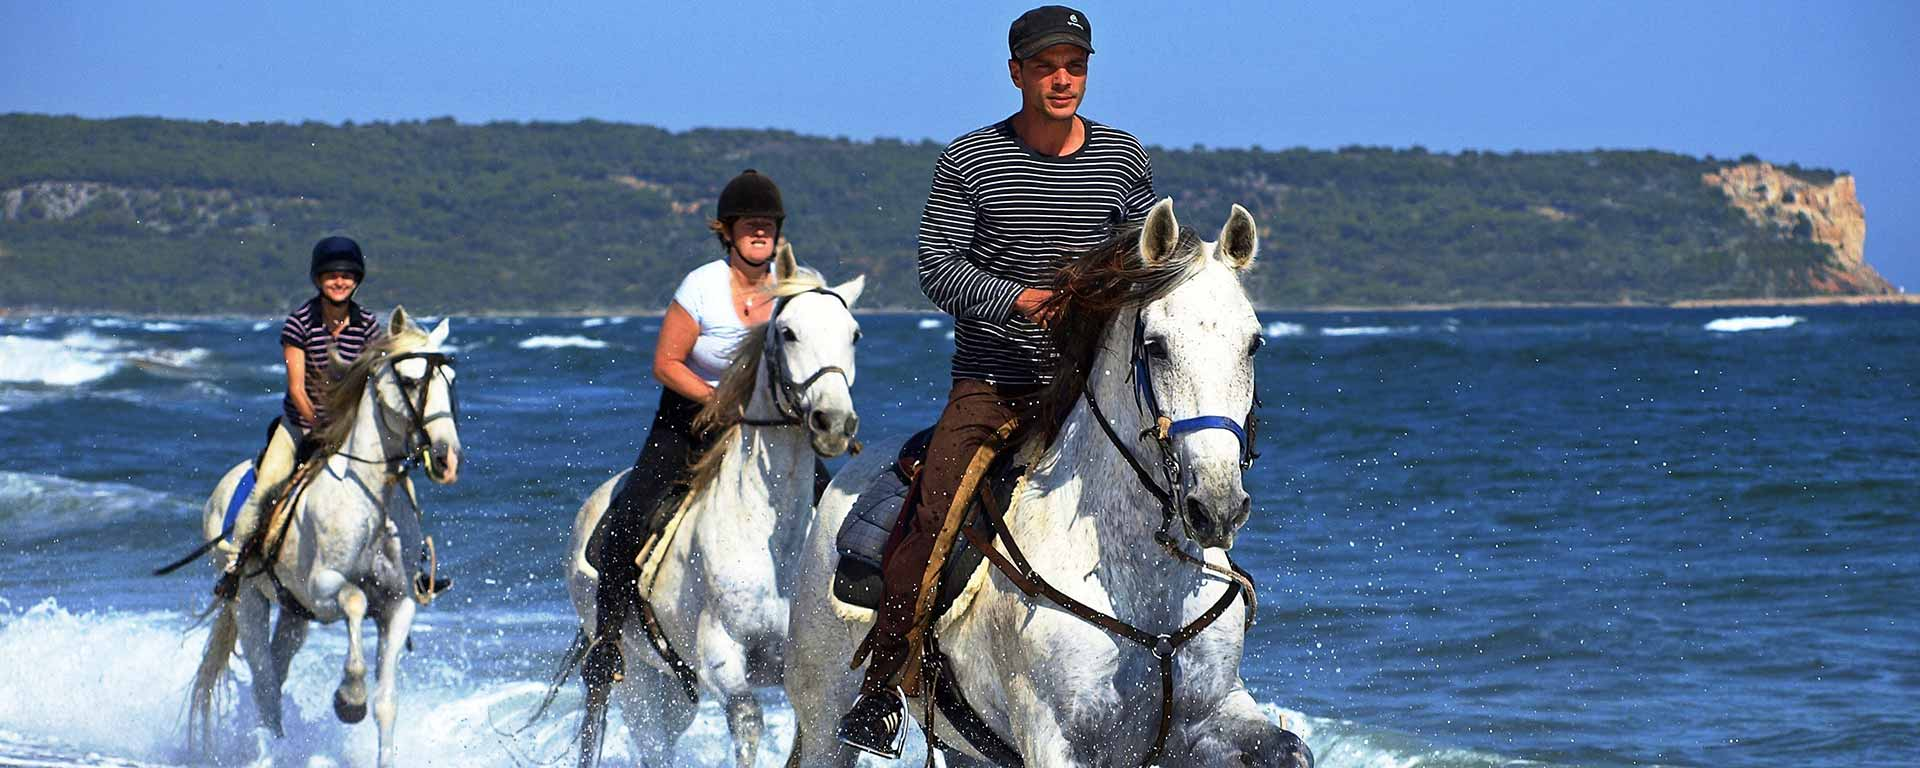 Exciting horse riding by the sea